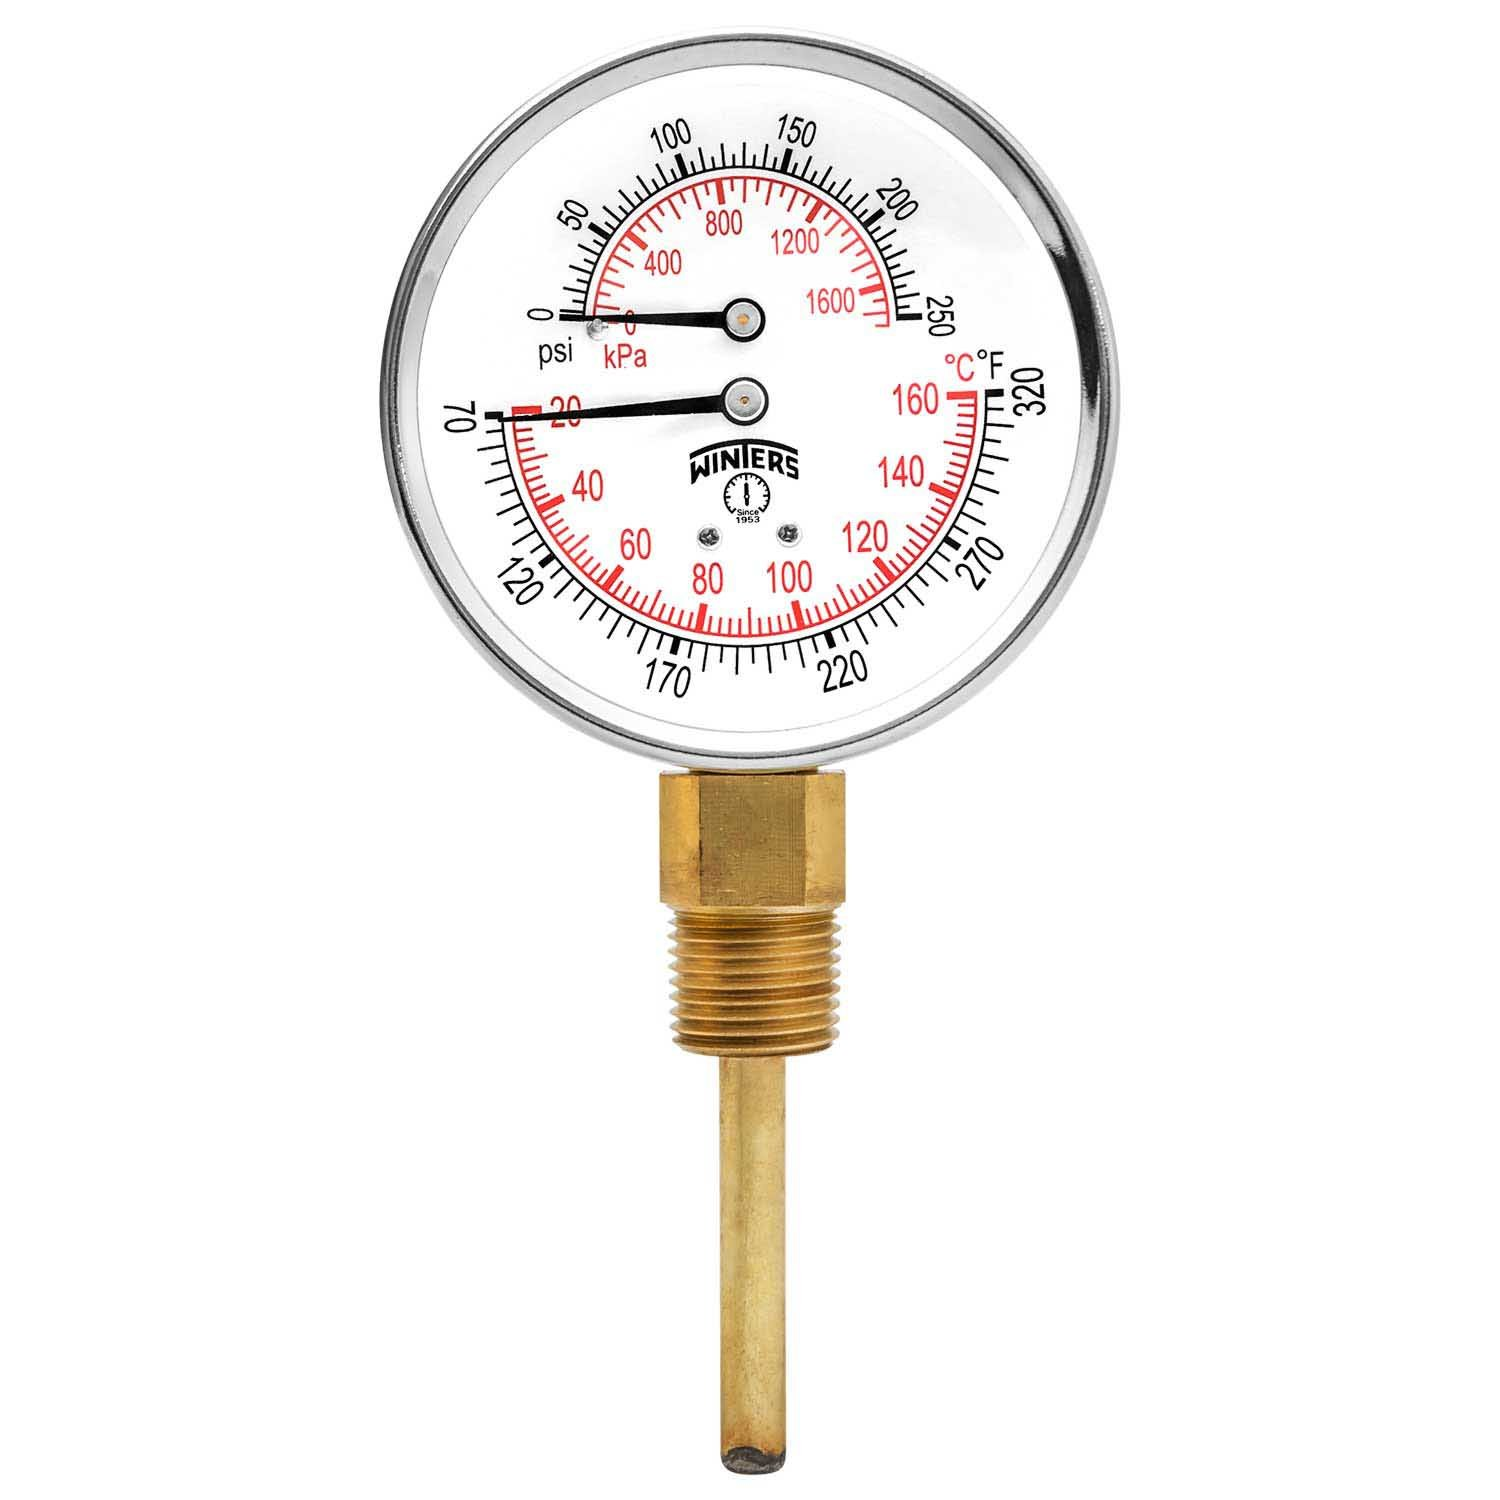 Winters TTD Series Steel Dual Scale Tridicator Thermometer with 2'' Stem, 0-250psi/kpa, 3'' Dial Display, ±3-2-3% Accuracy, 1/2'' NPT Bottom Mount, 70-320 Deg F/C by Winters Instruments